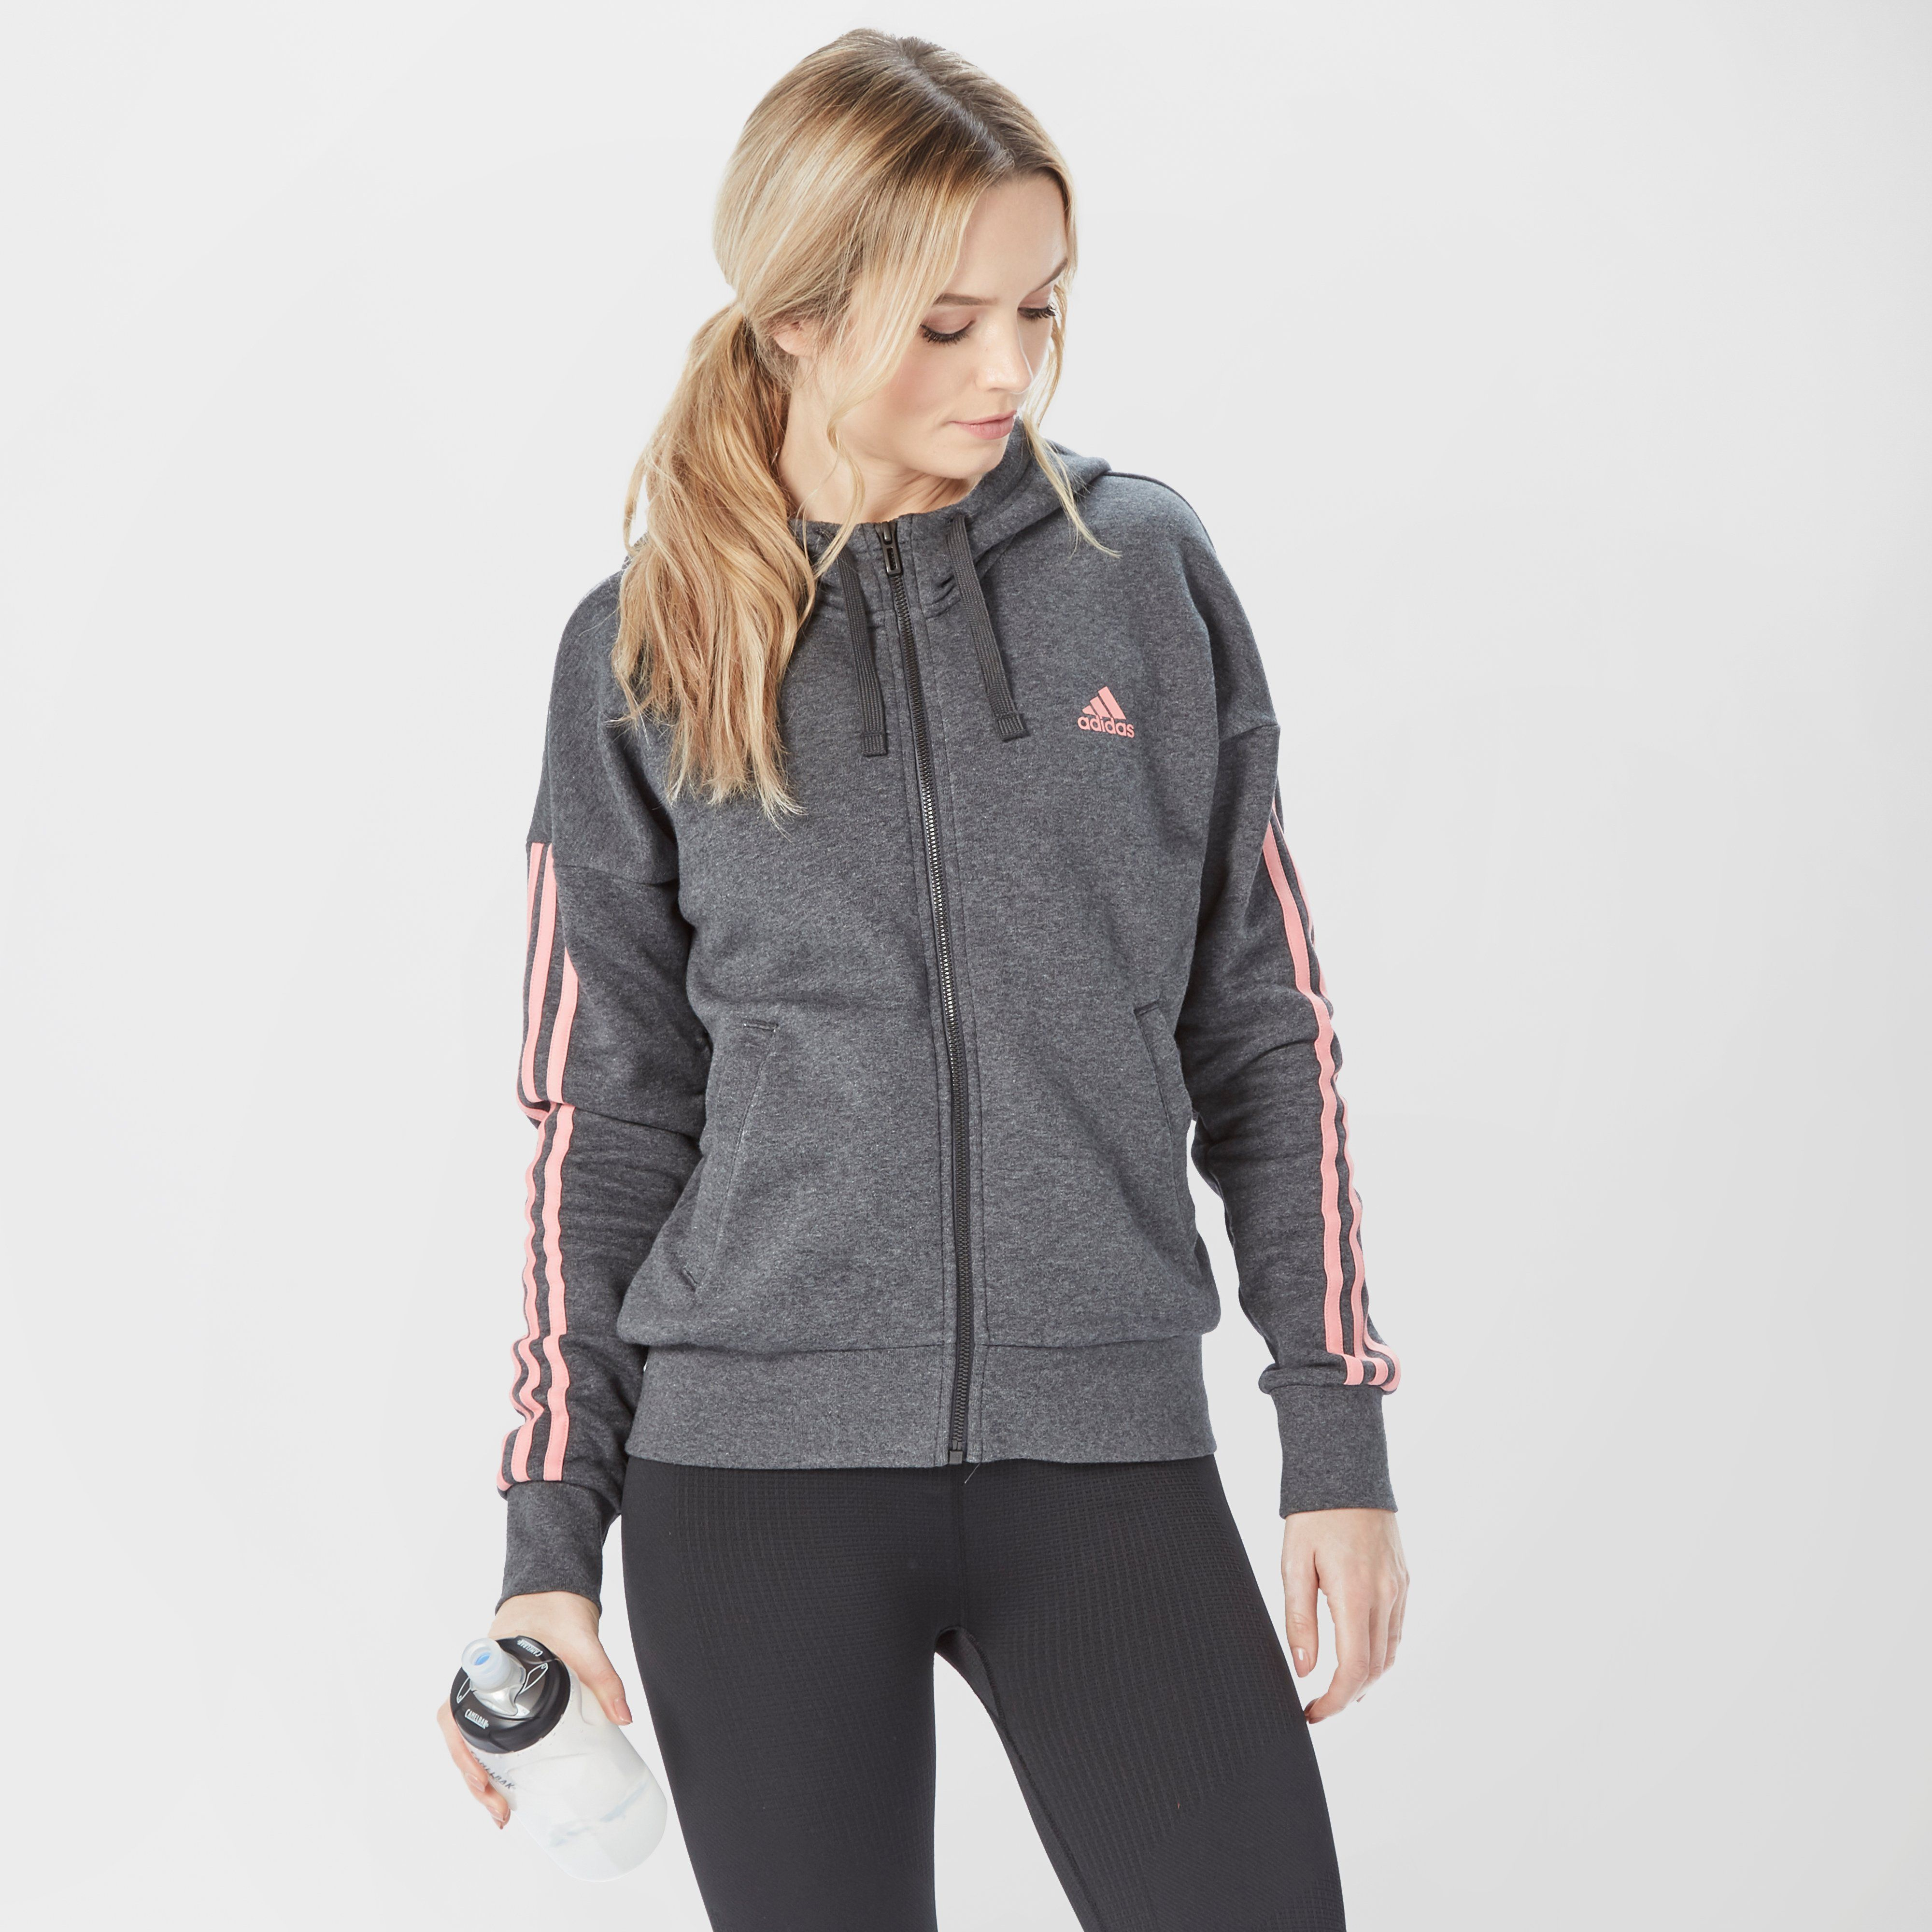 ADIDAS Women's Essentials 3-Stripe Hoodie